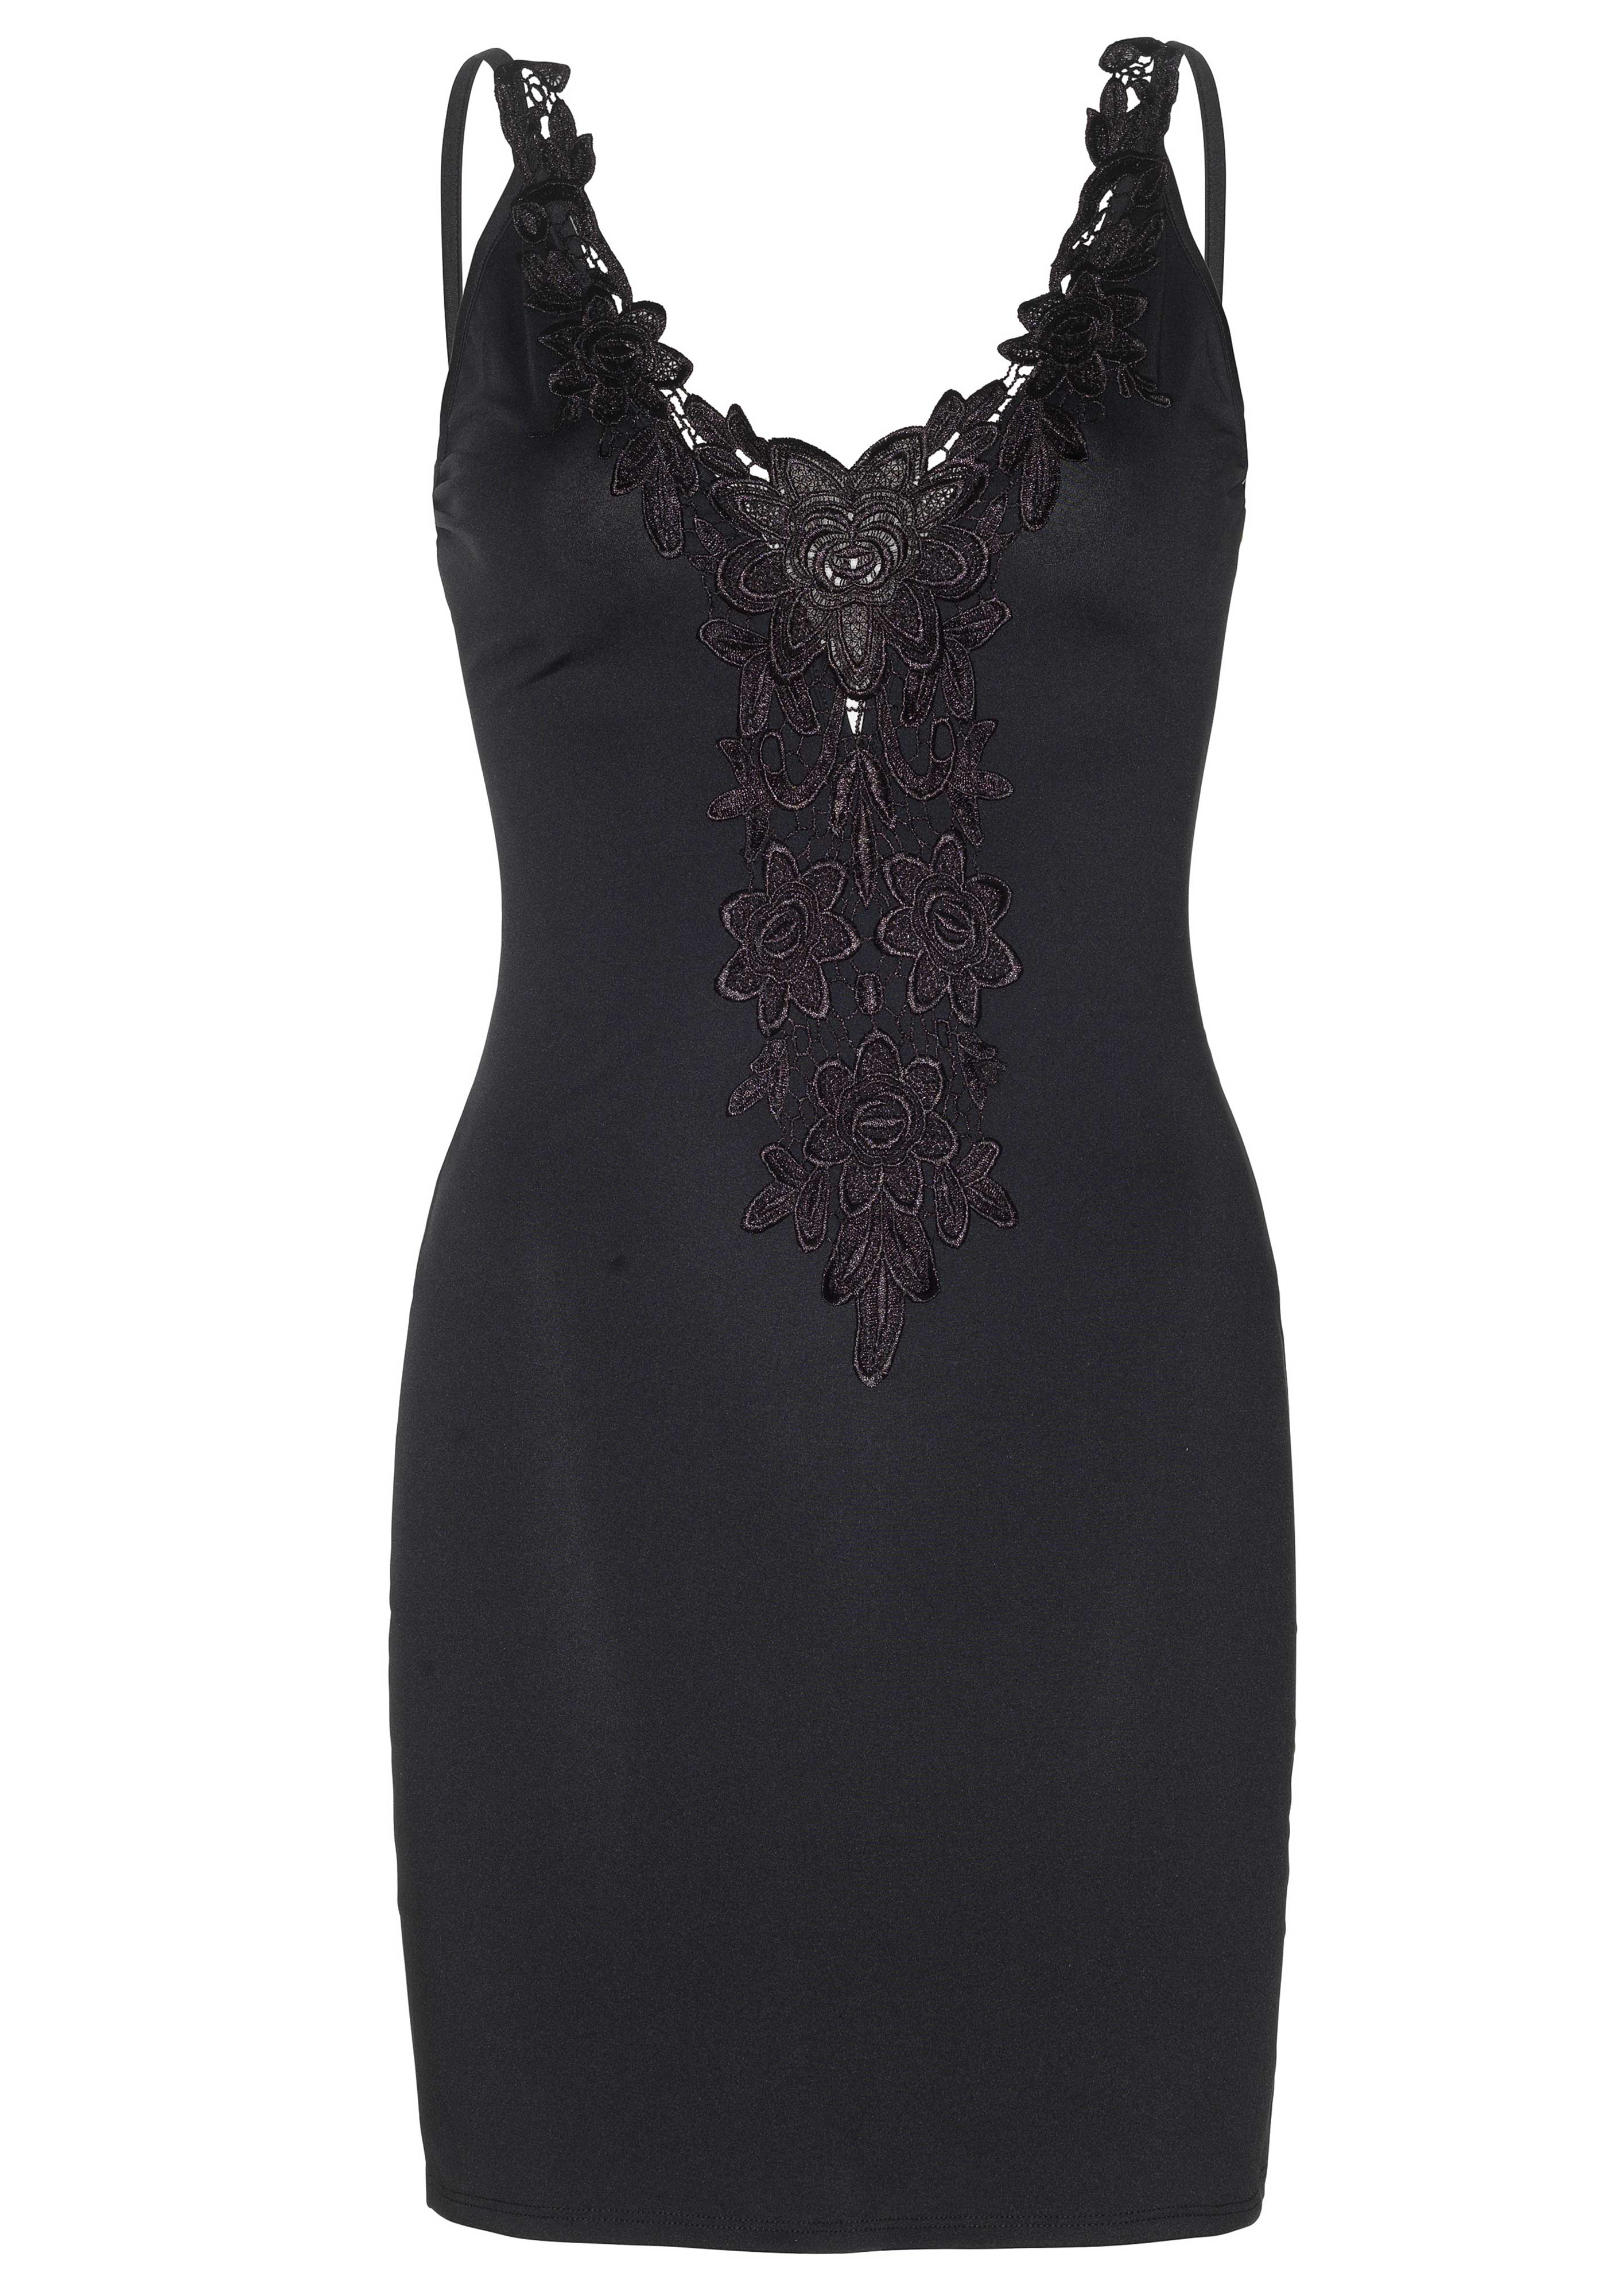 <p>Dress Dolce is a spandex bodycon dress with adjustable straps, a deep-V neck and an embroidered lace trim.</p>